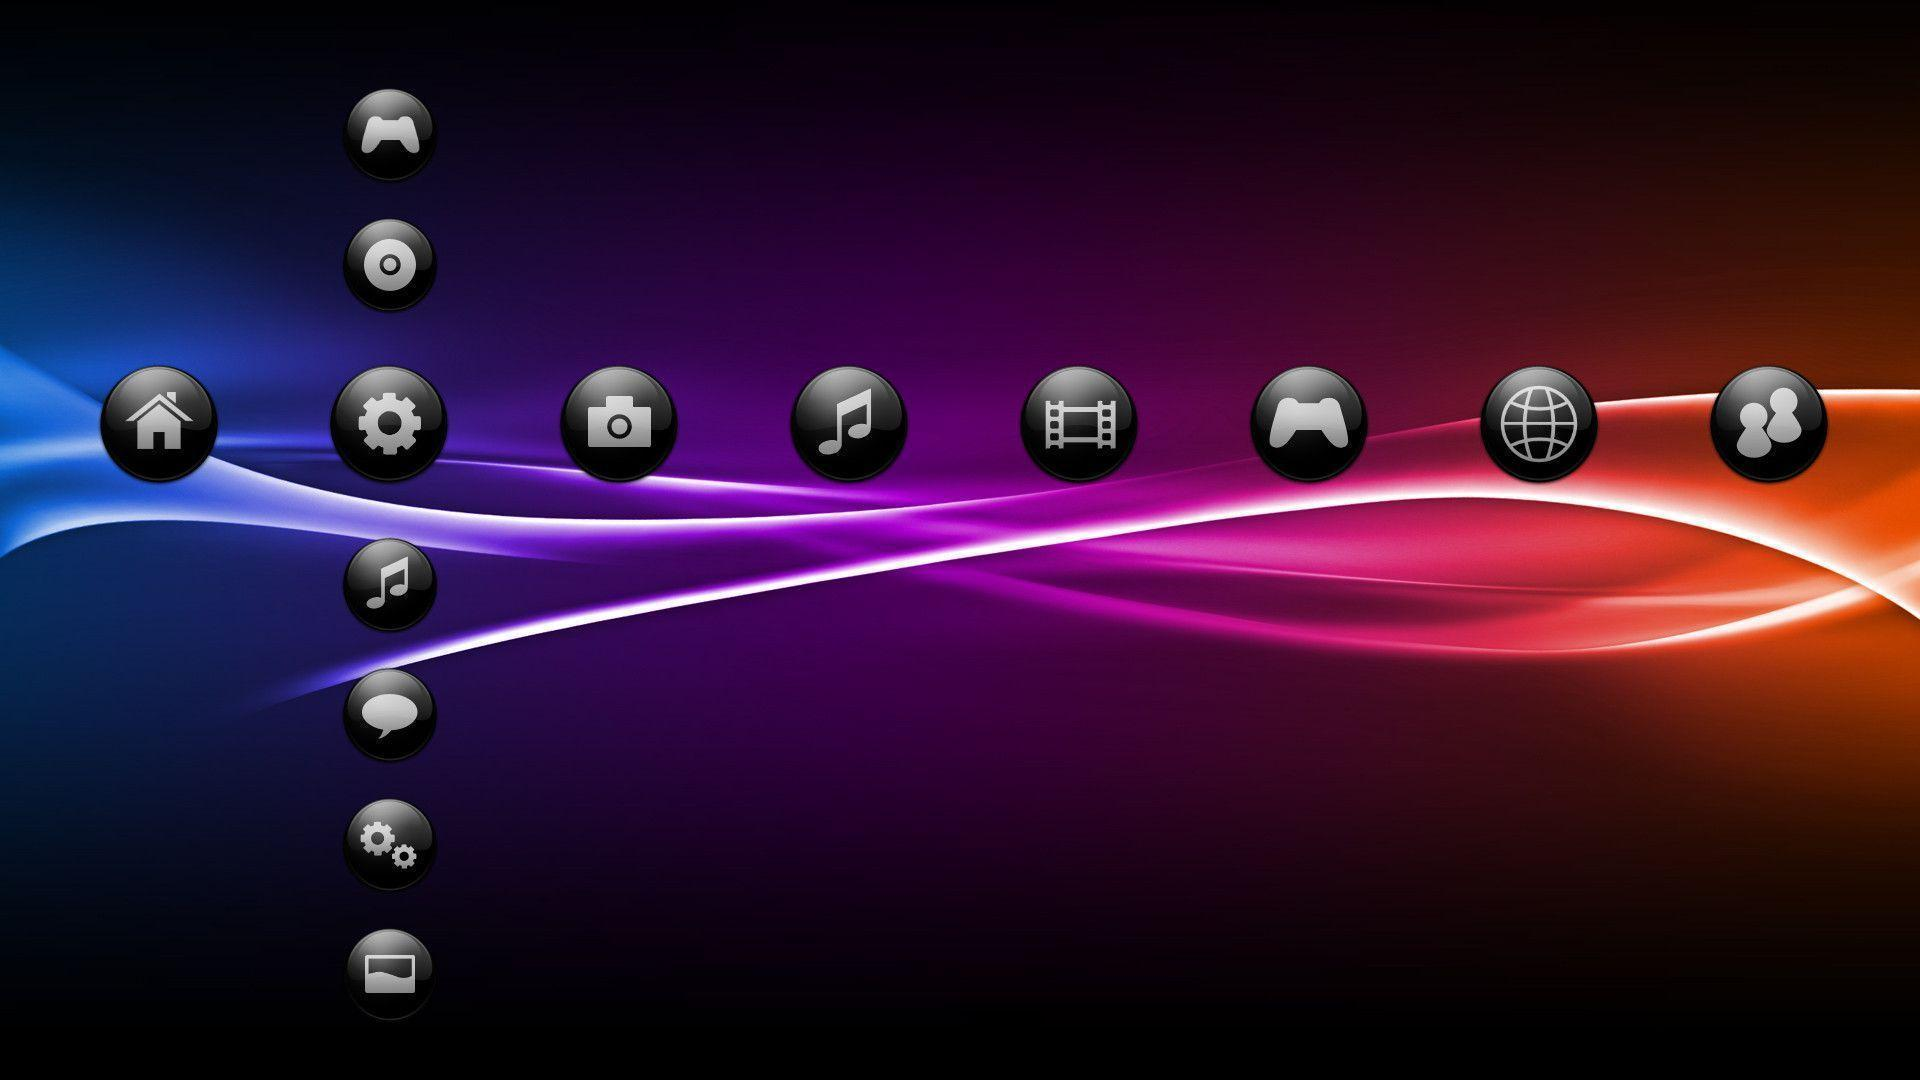 ps3 wallpapers themes wallpaper cave